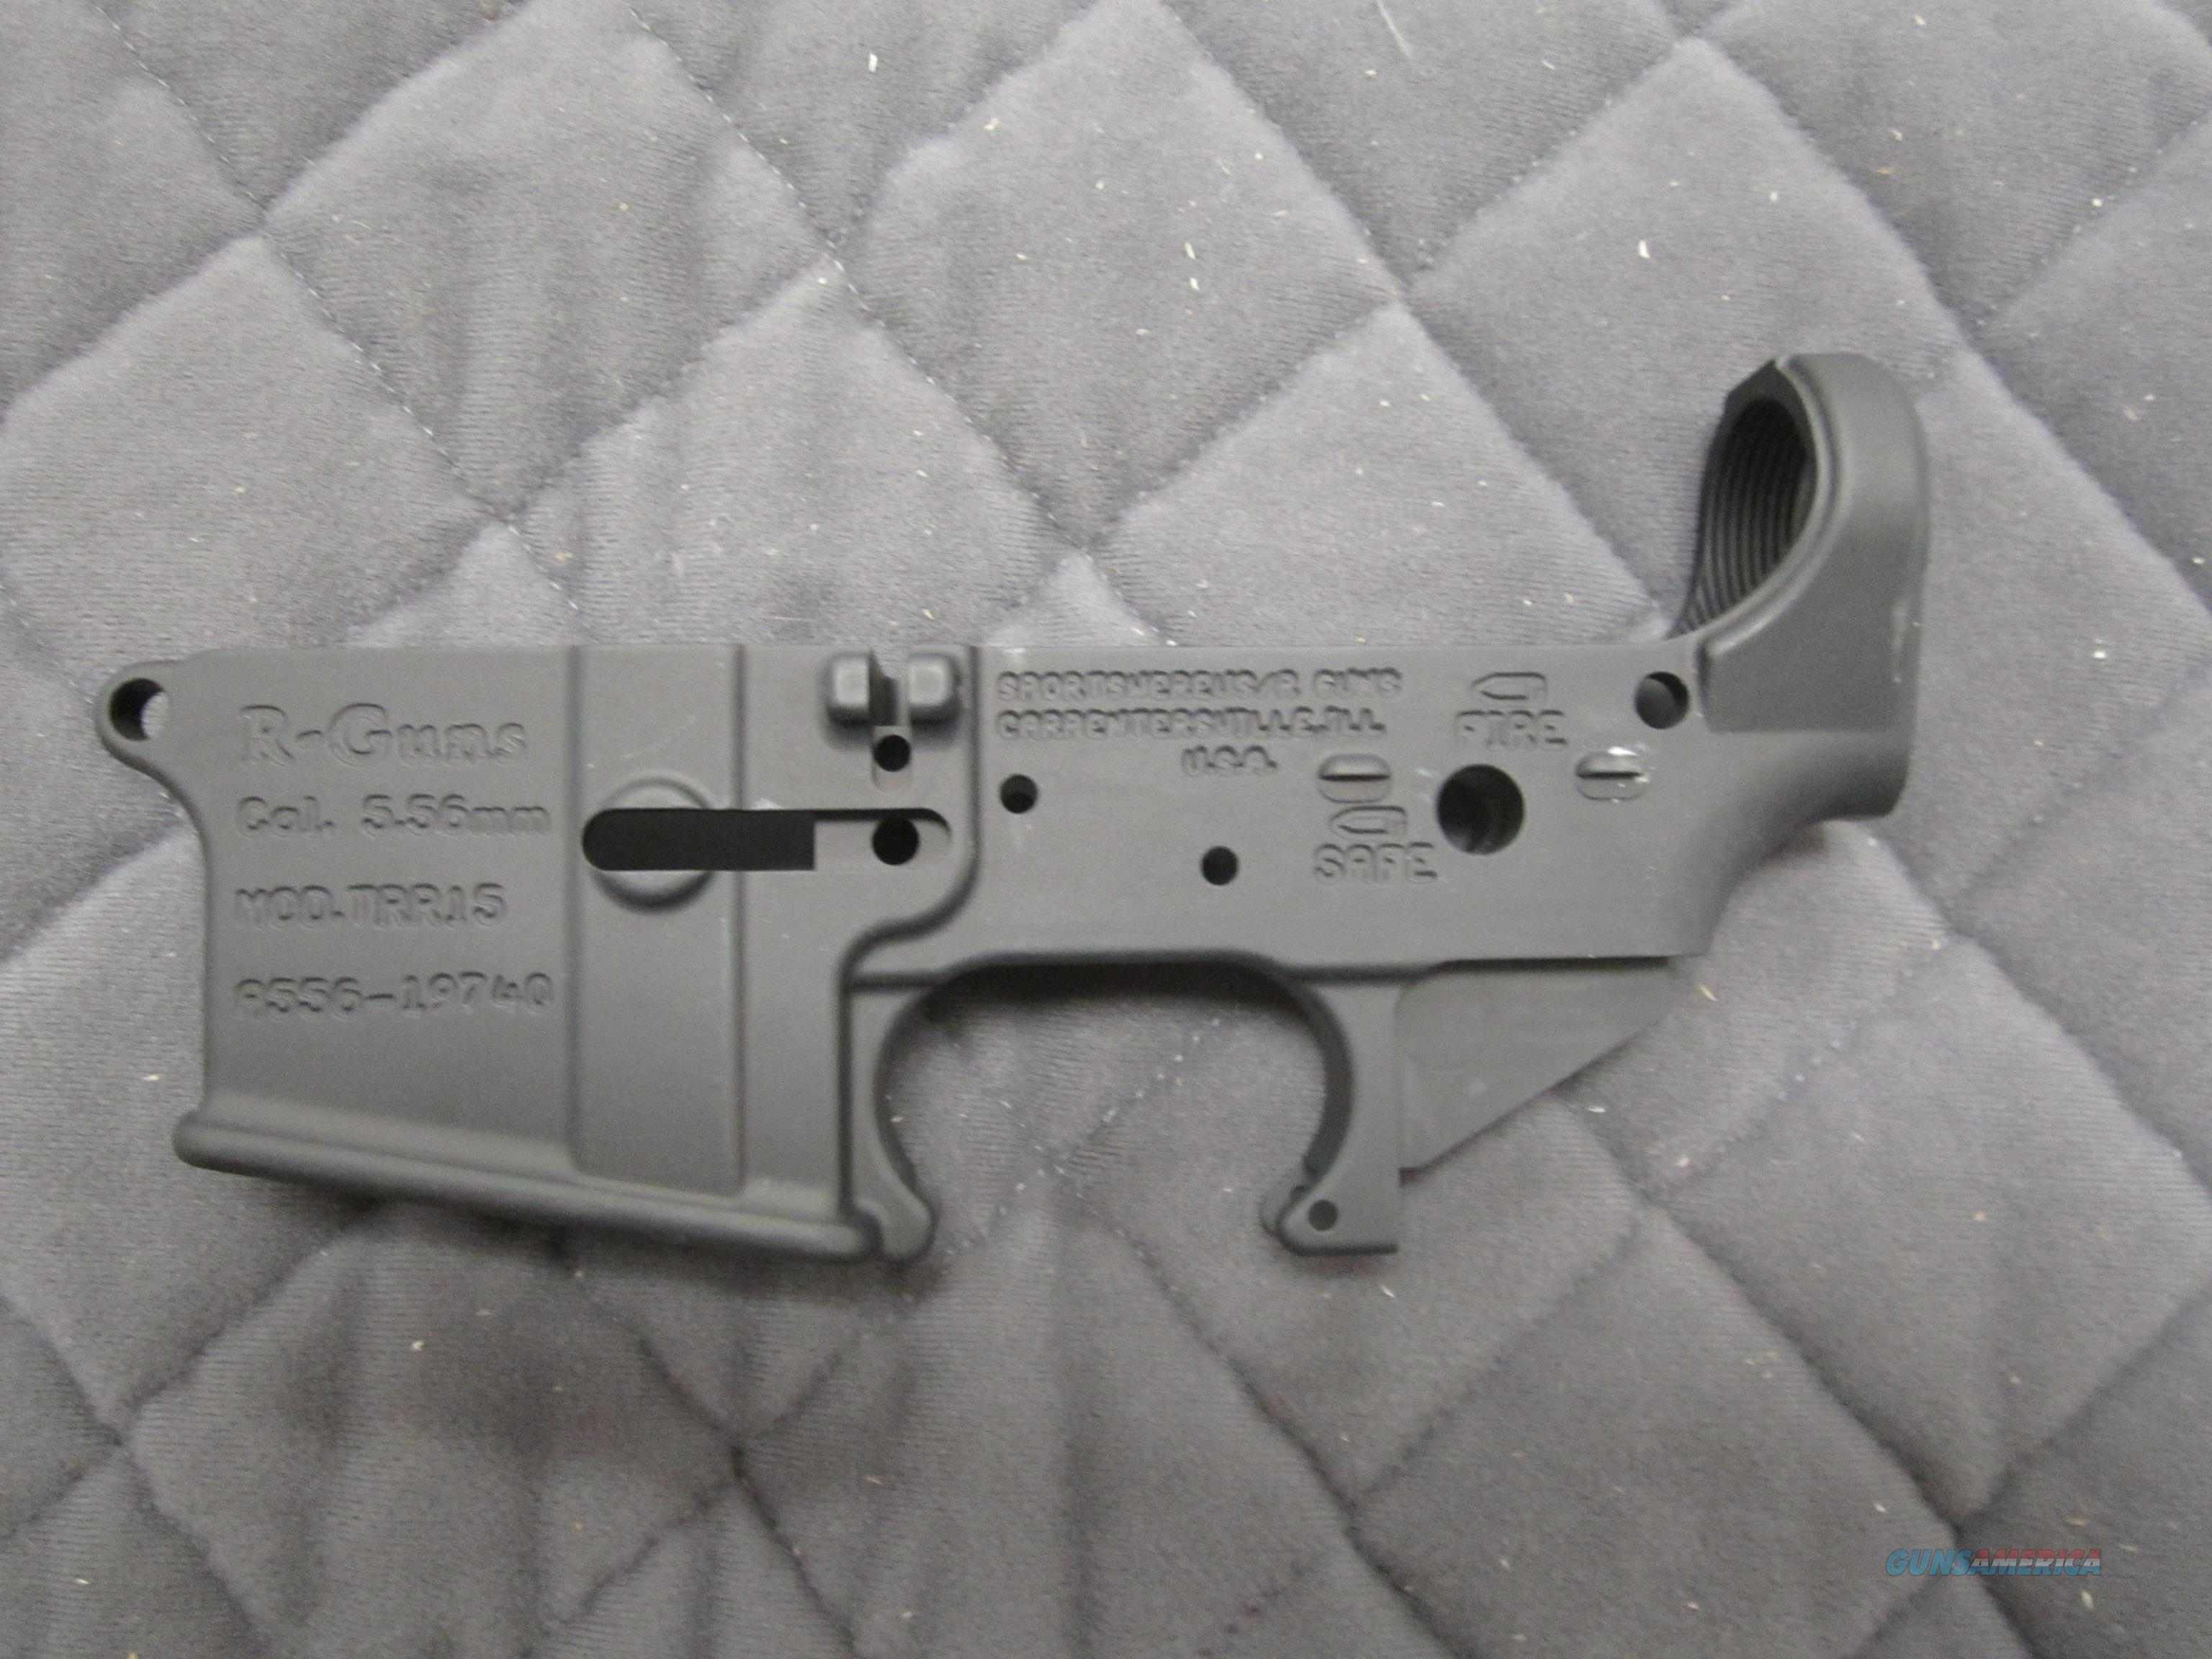 NIB R Guns TRR-15 Stripped lower receiver .223/5.56/.300 Blackout  Guns > Rifles > R Misc Rifles